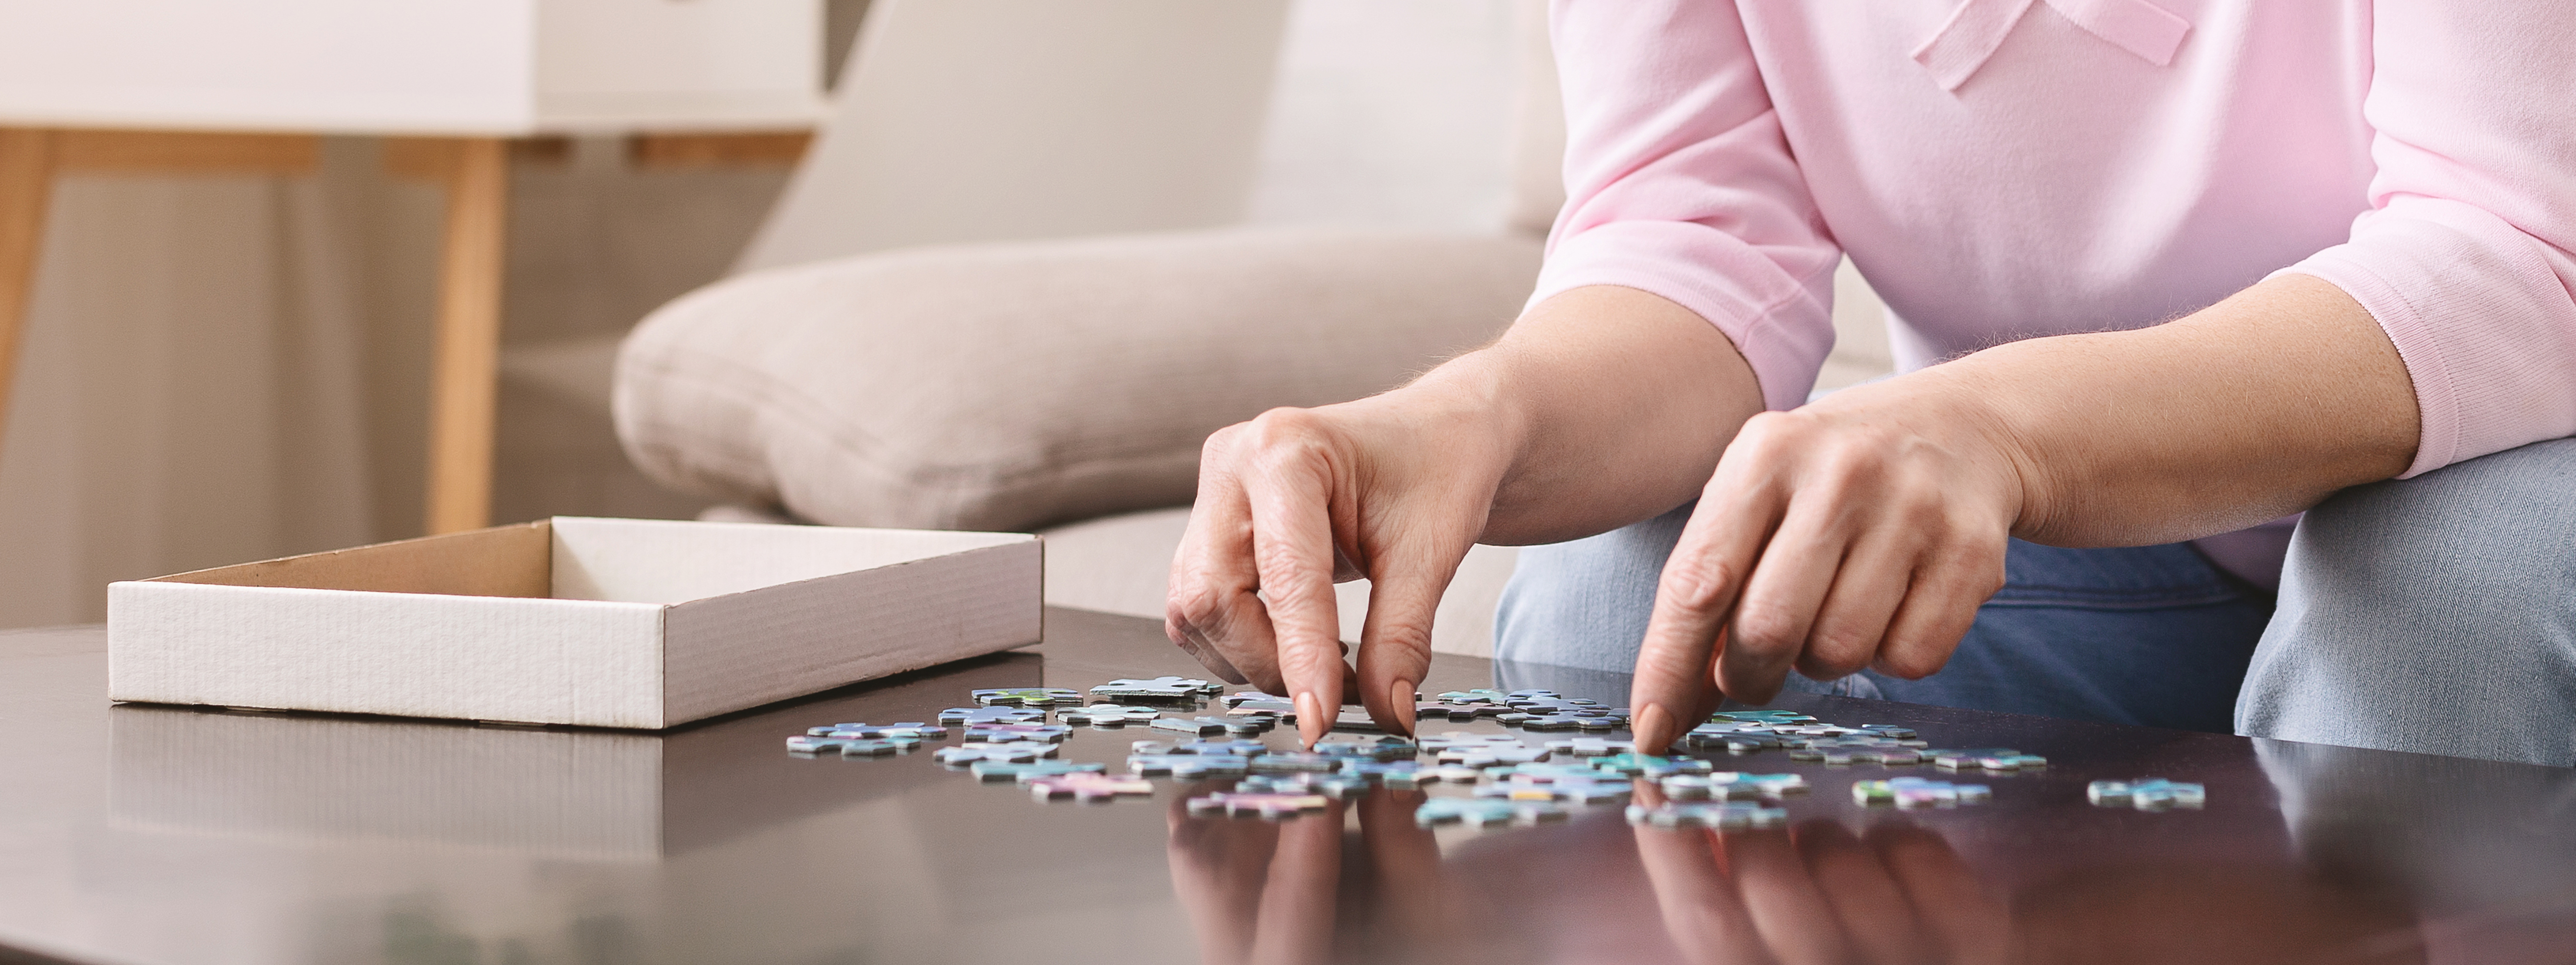 elderly-female-hands-trying-to-connect-pieces-of-puzzle